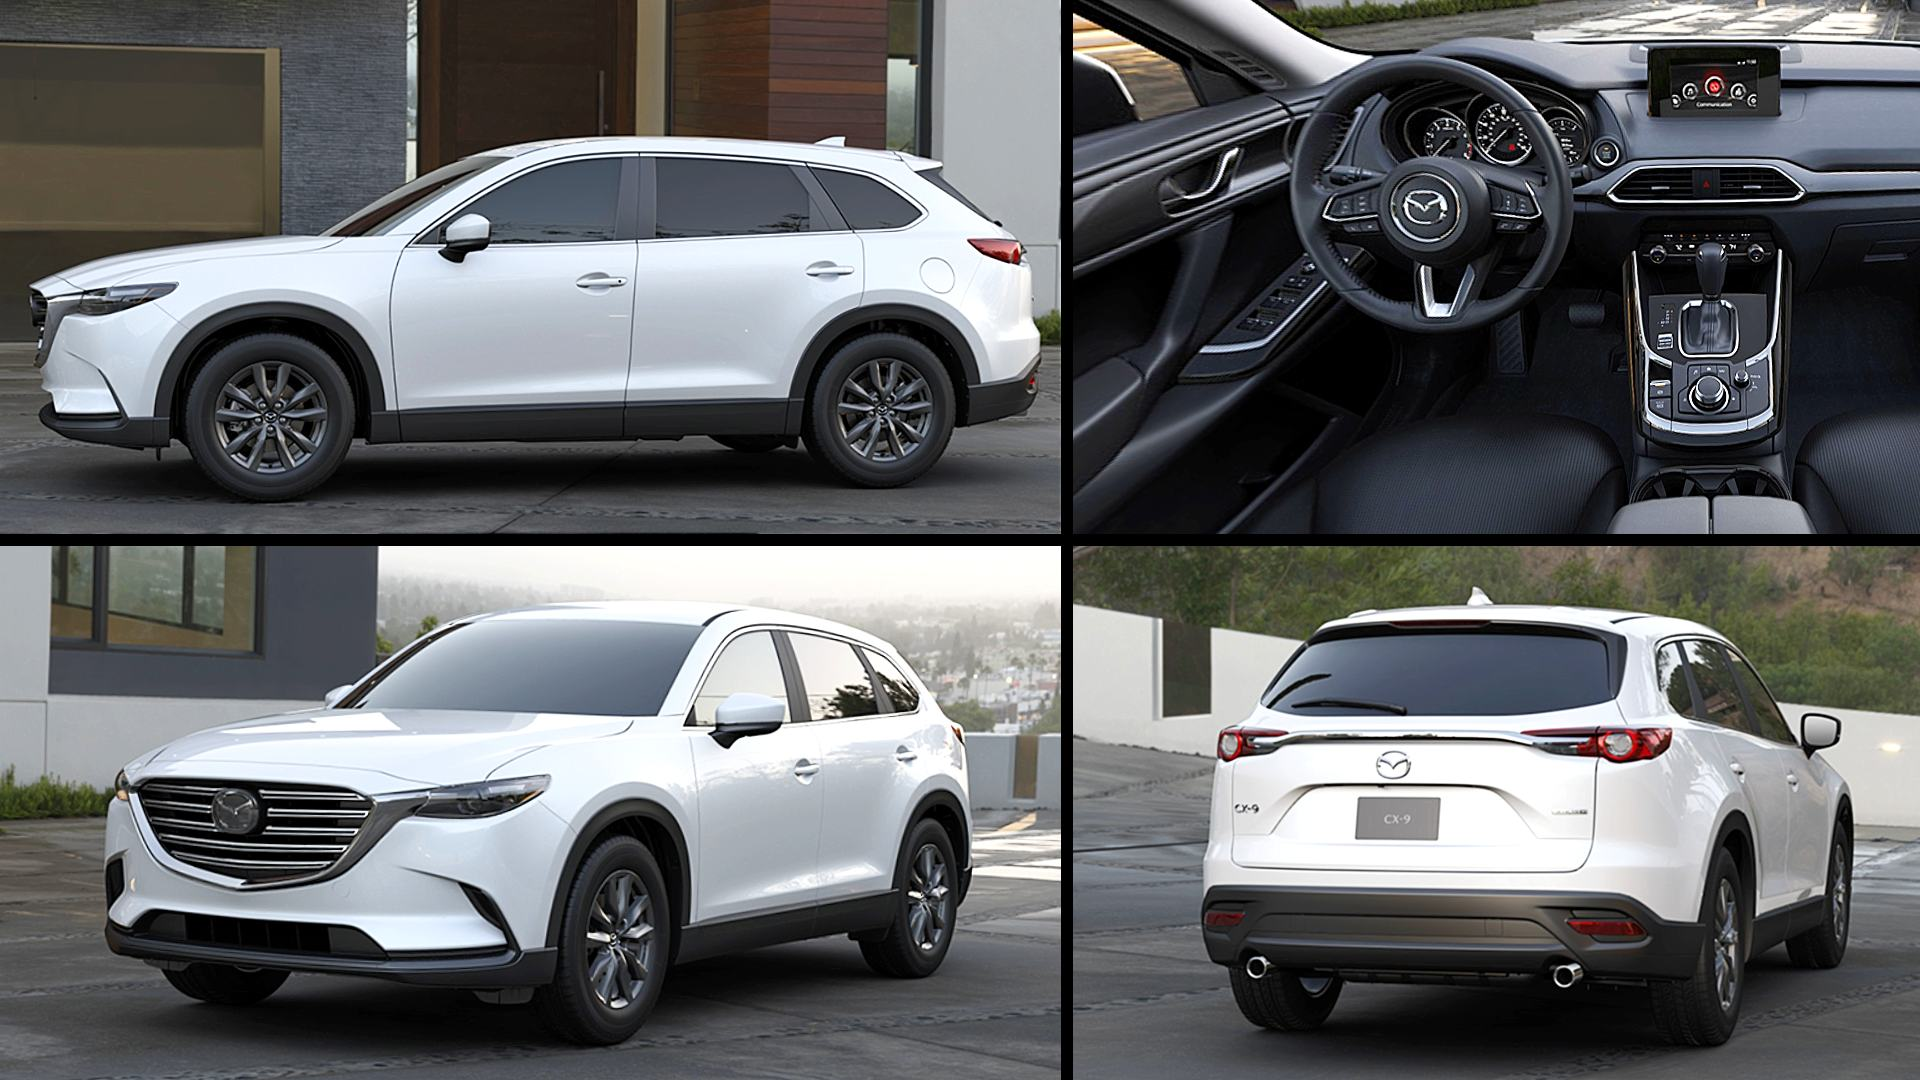 2020 MAZDA CX-9 Sport White Photos